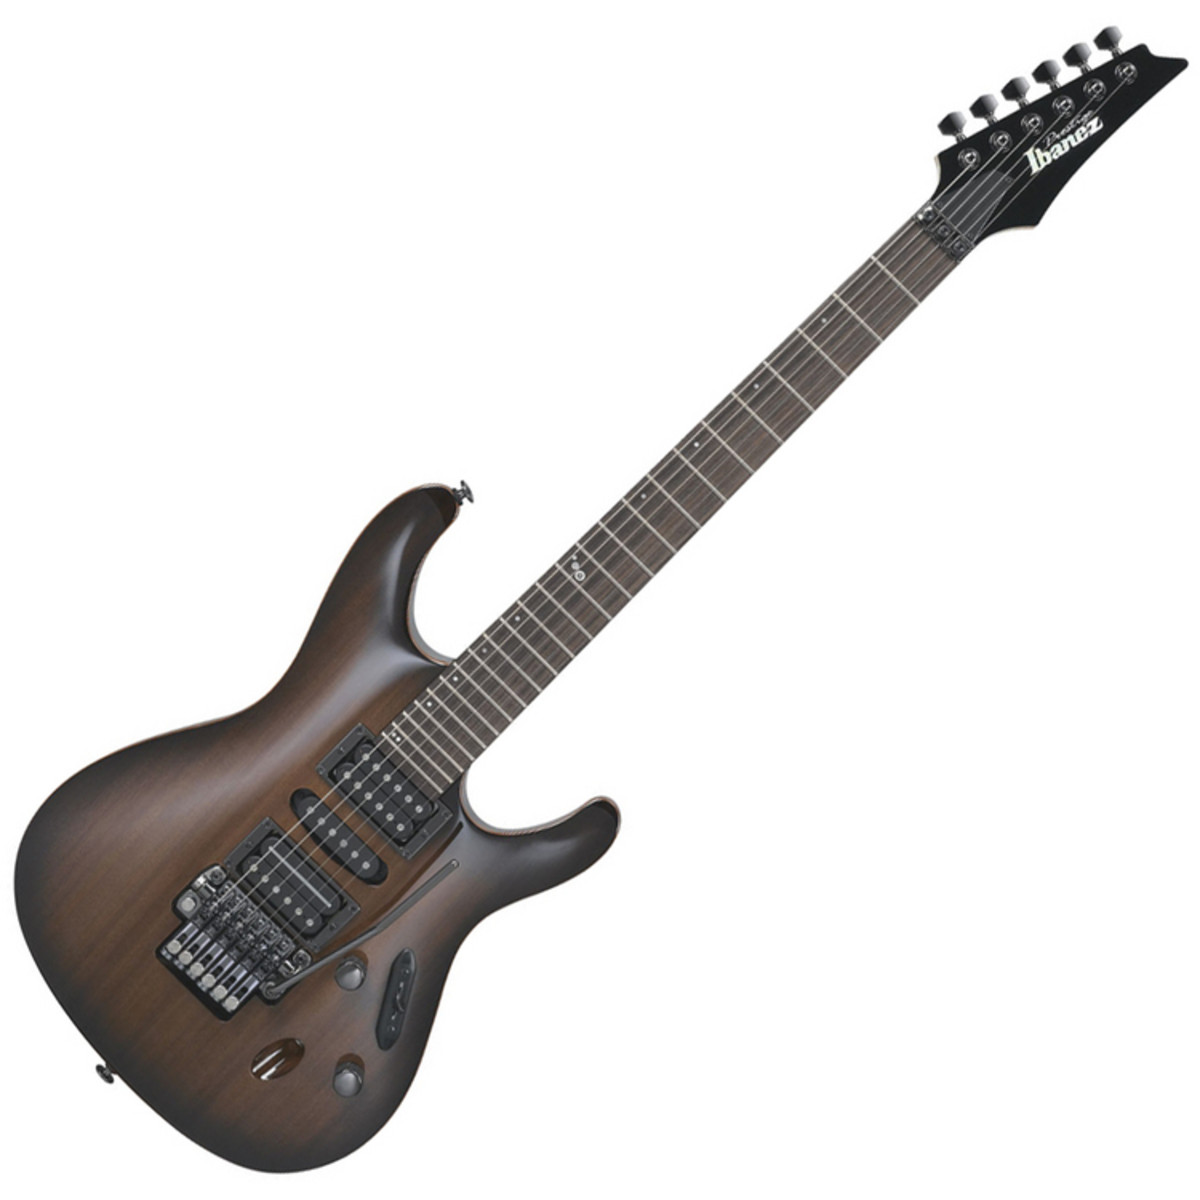 disc ibanez prestige s5470 electric guitar trans black sunburst at. Black Bedroom Furniture Sets. Home Design Ideas